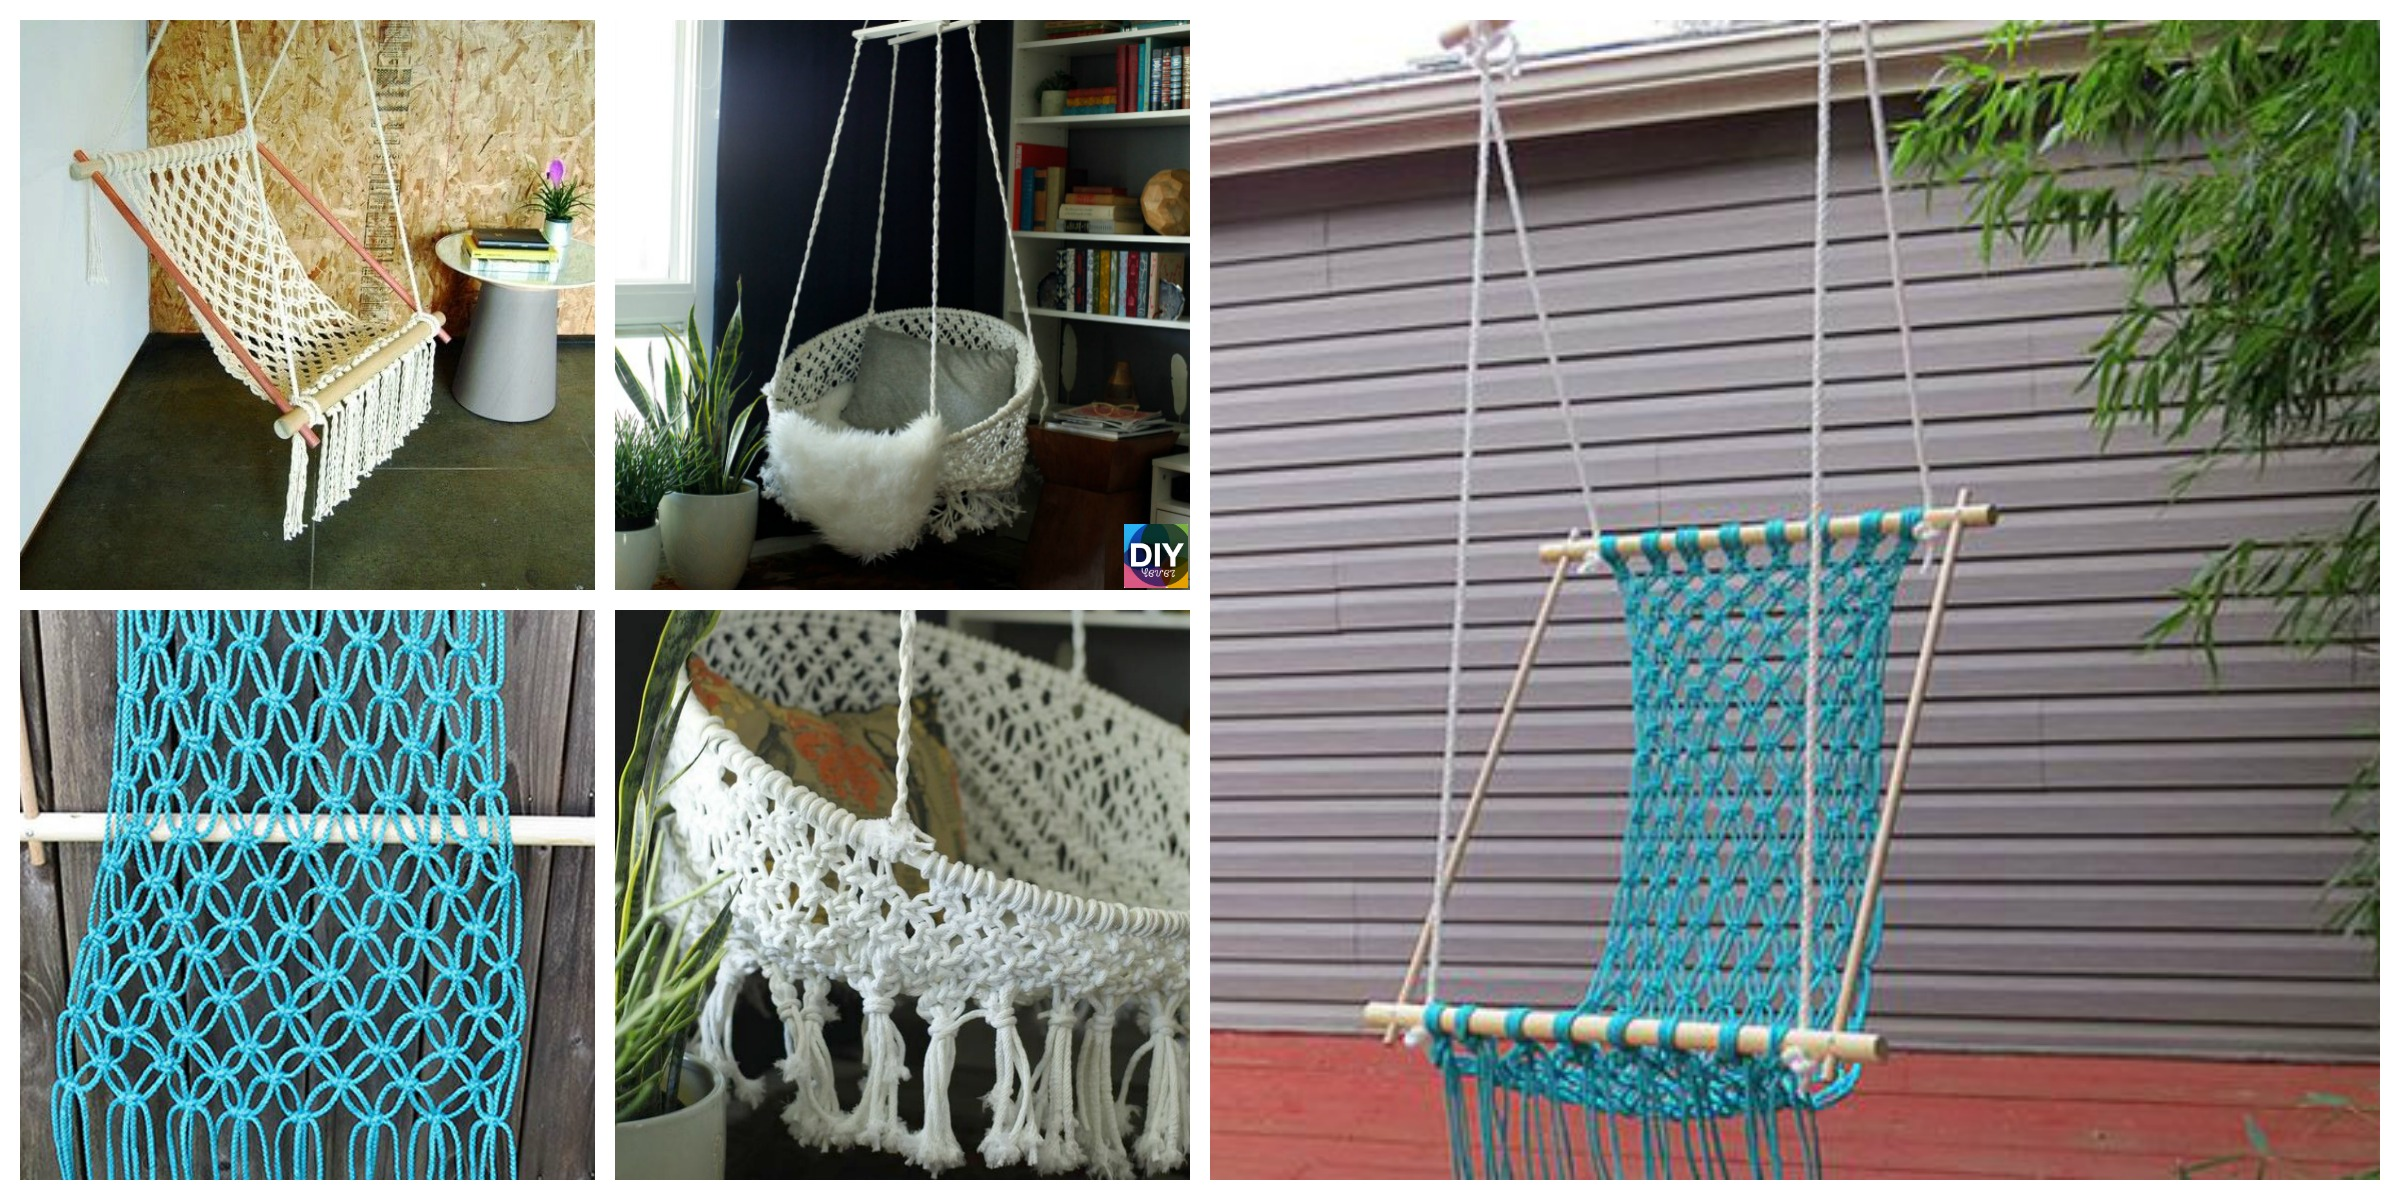 DIY Hanging Macrame Chair Tutorials